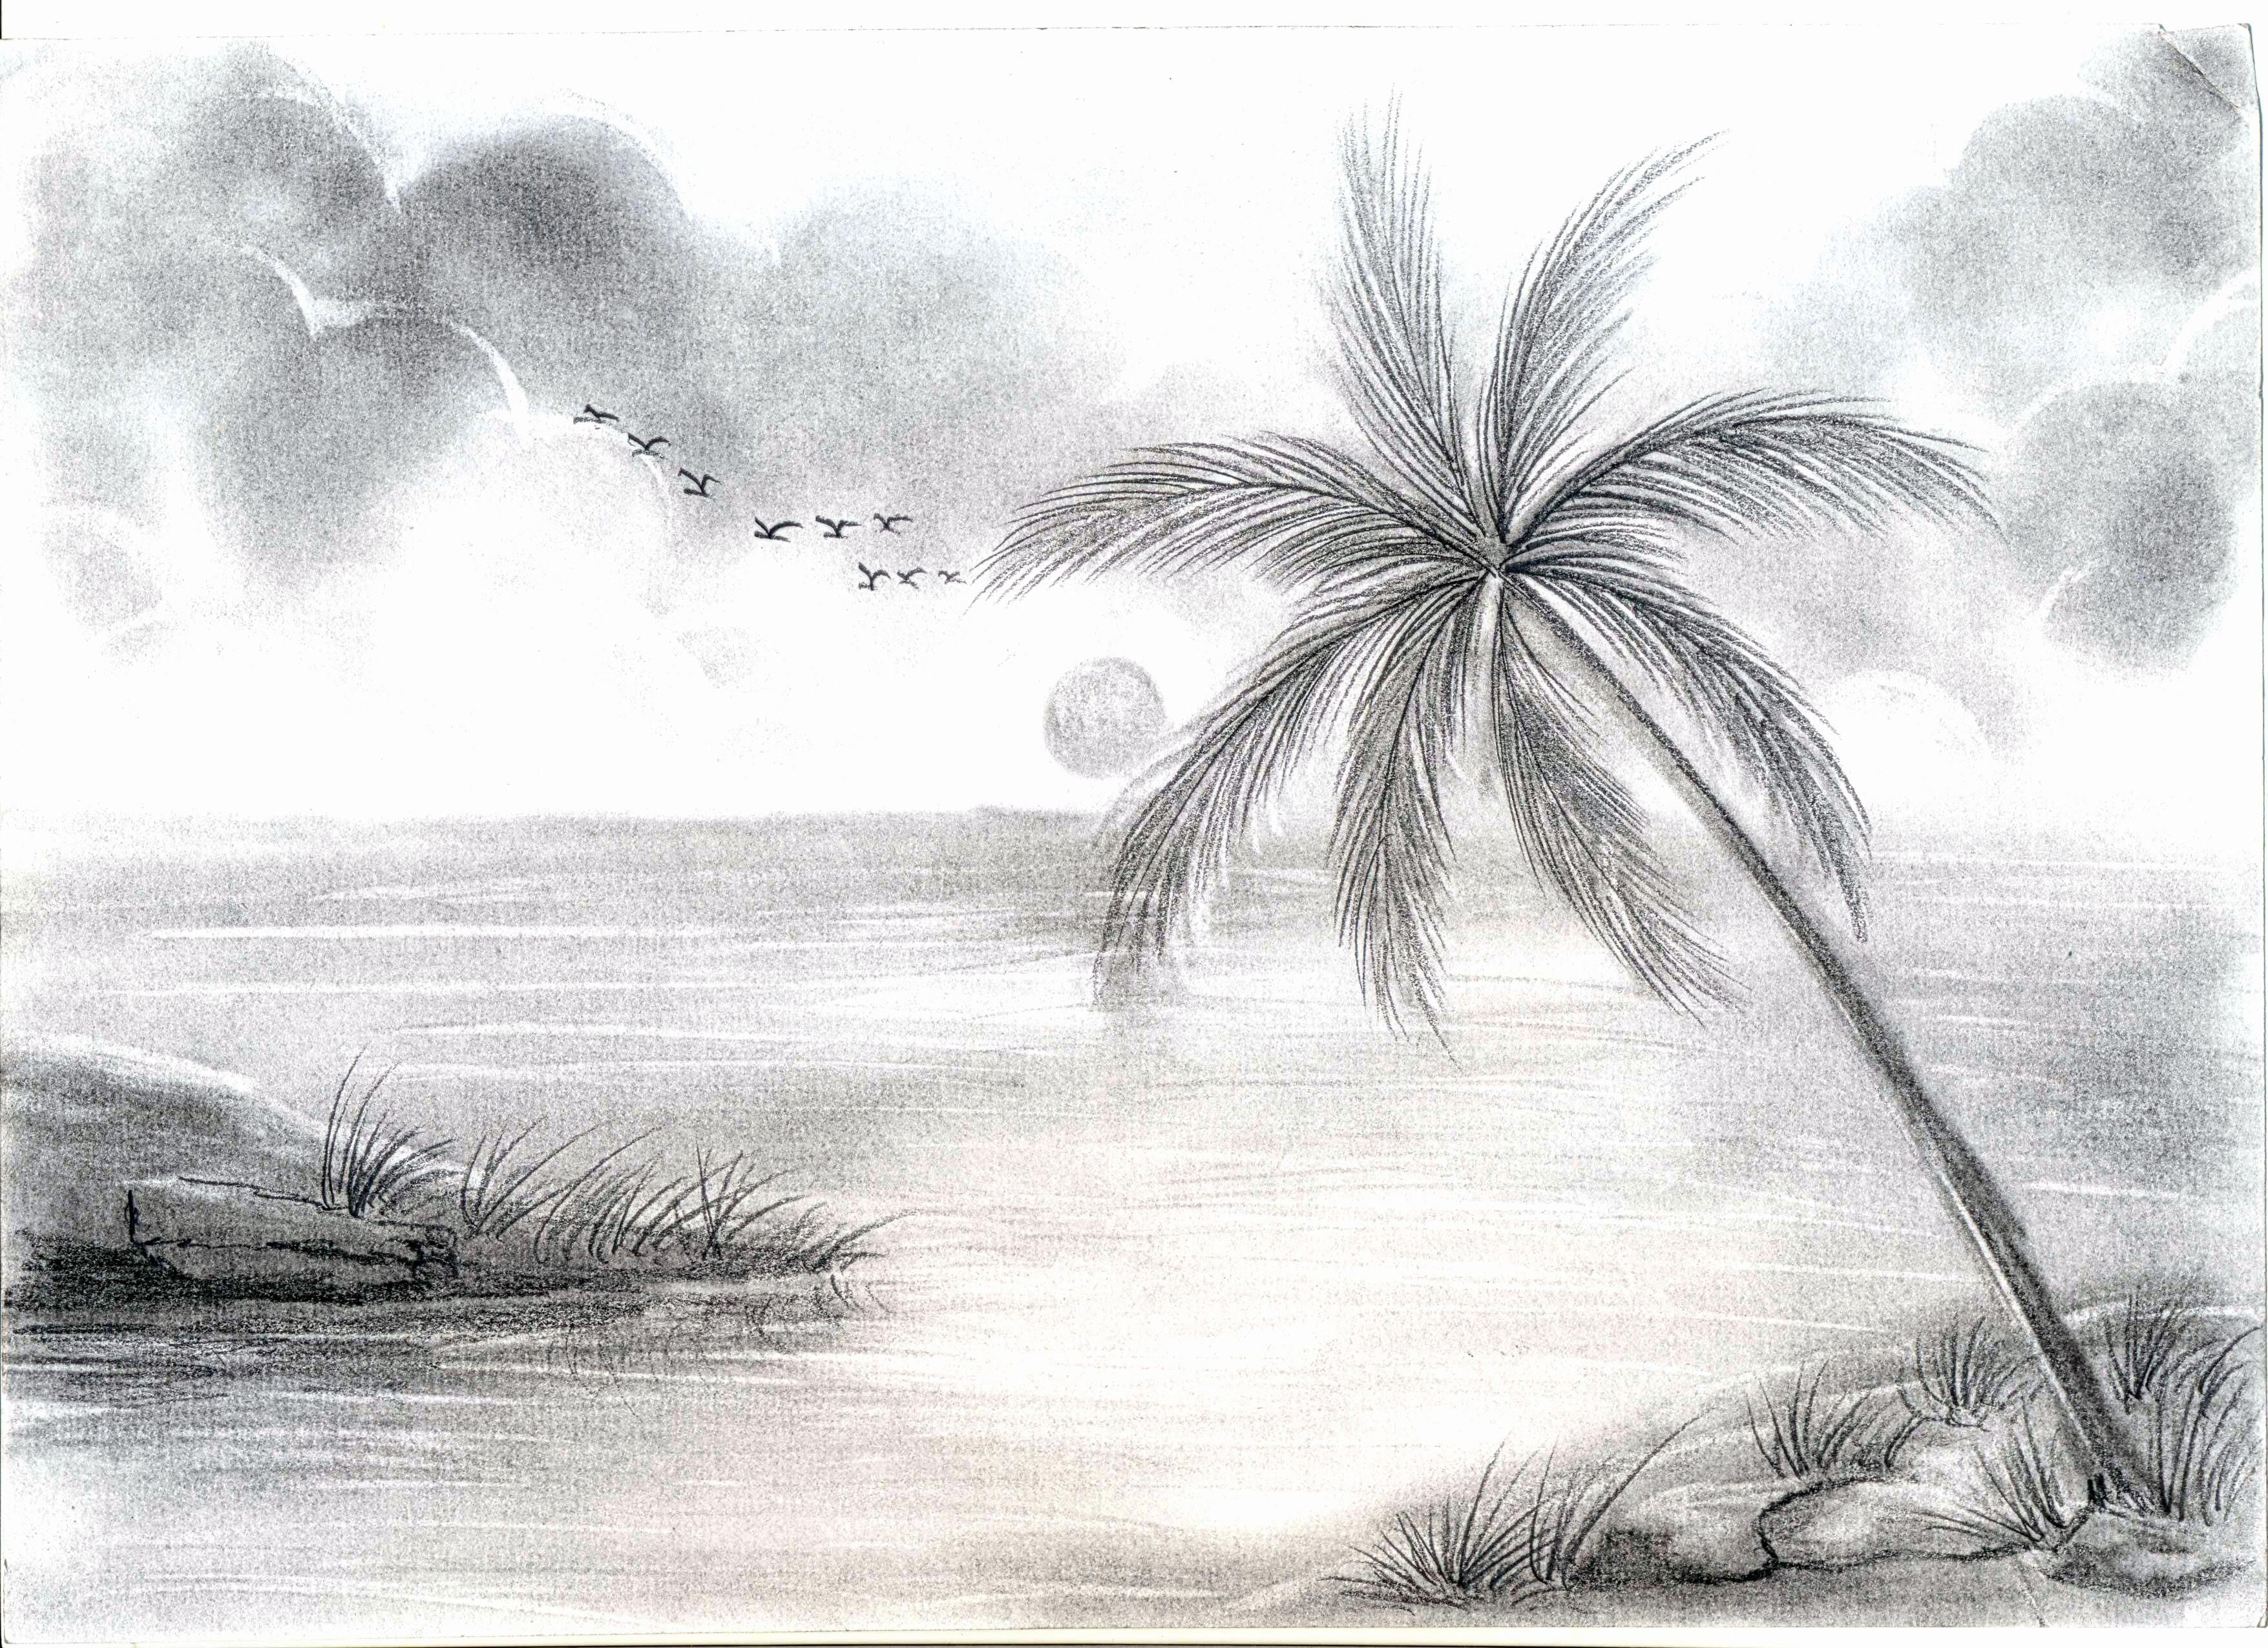 Landscape drawing ideas awesome nature scenry sketch ideas pencil drawings landscape ideas pencil modernlanscape